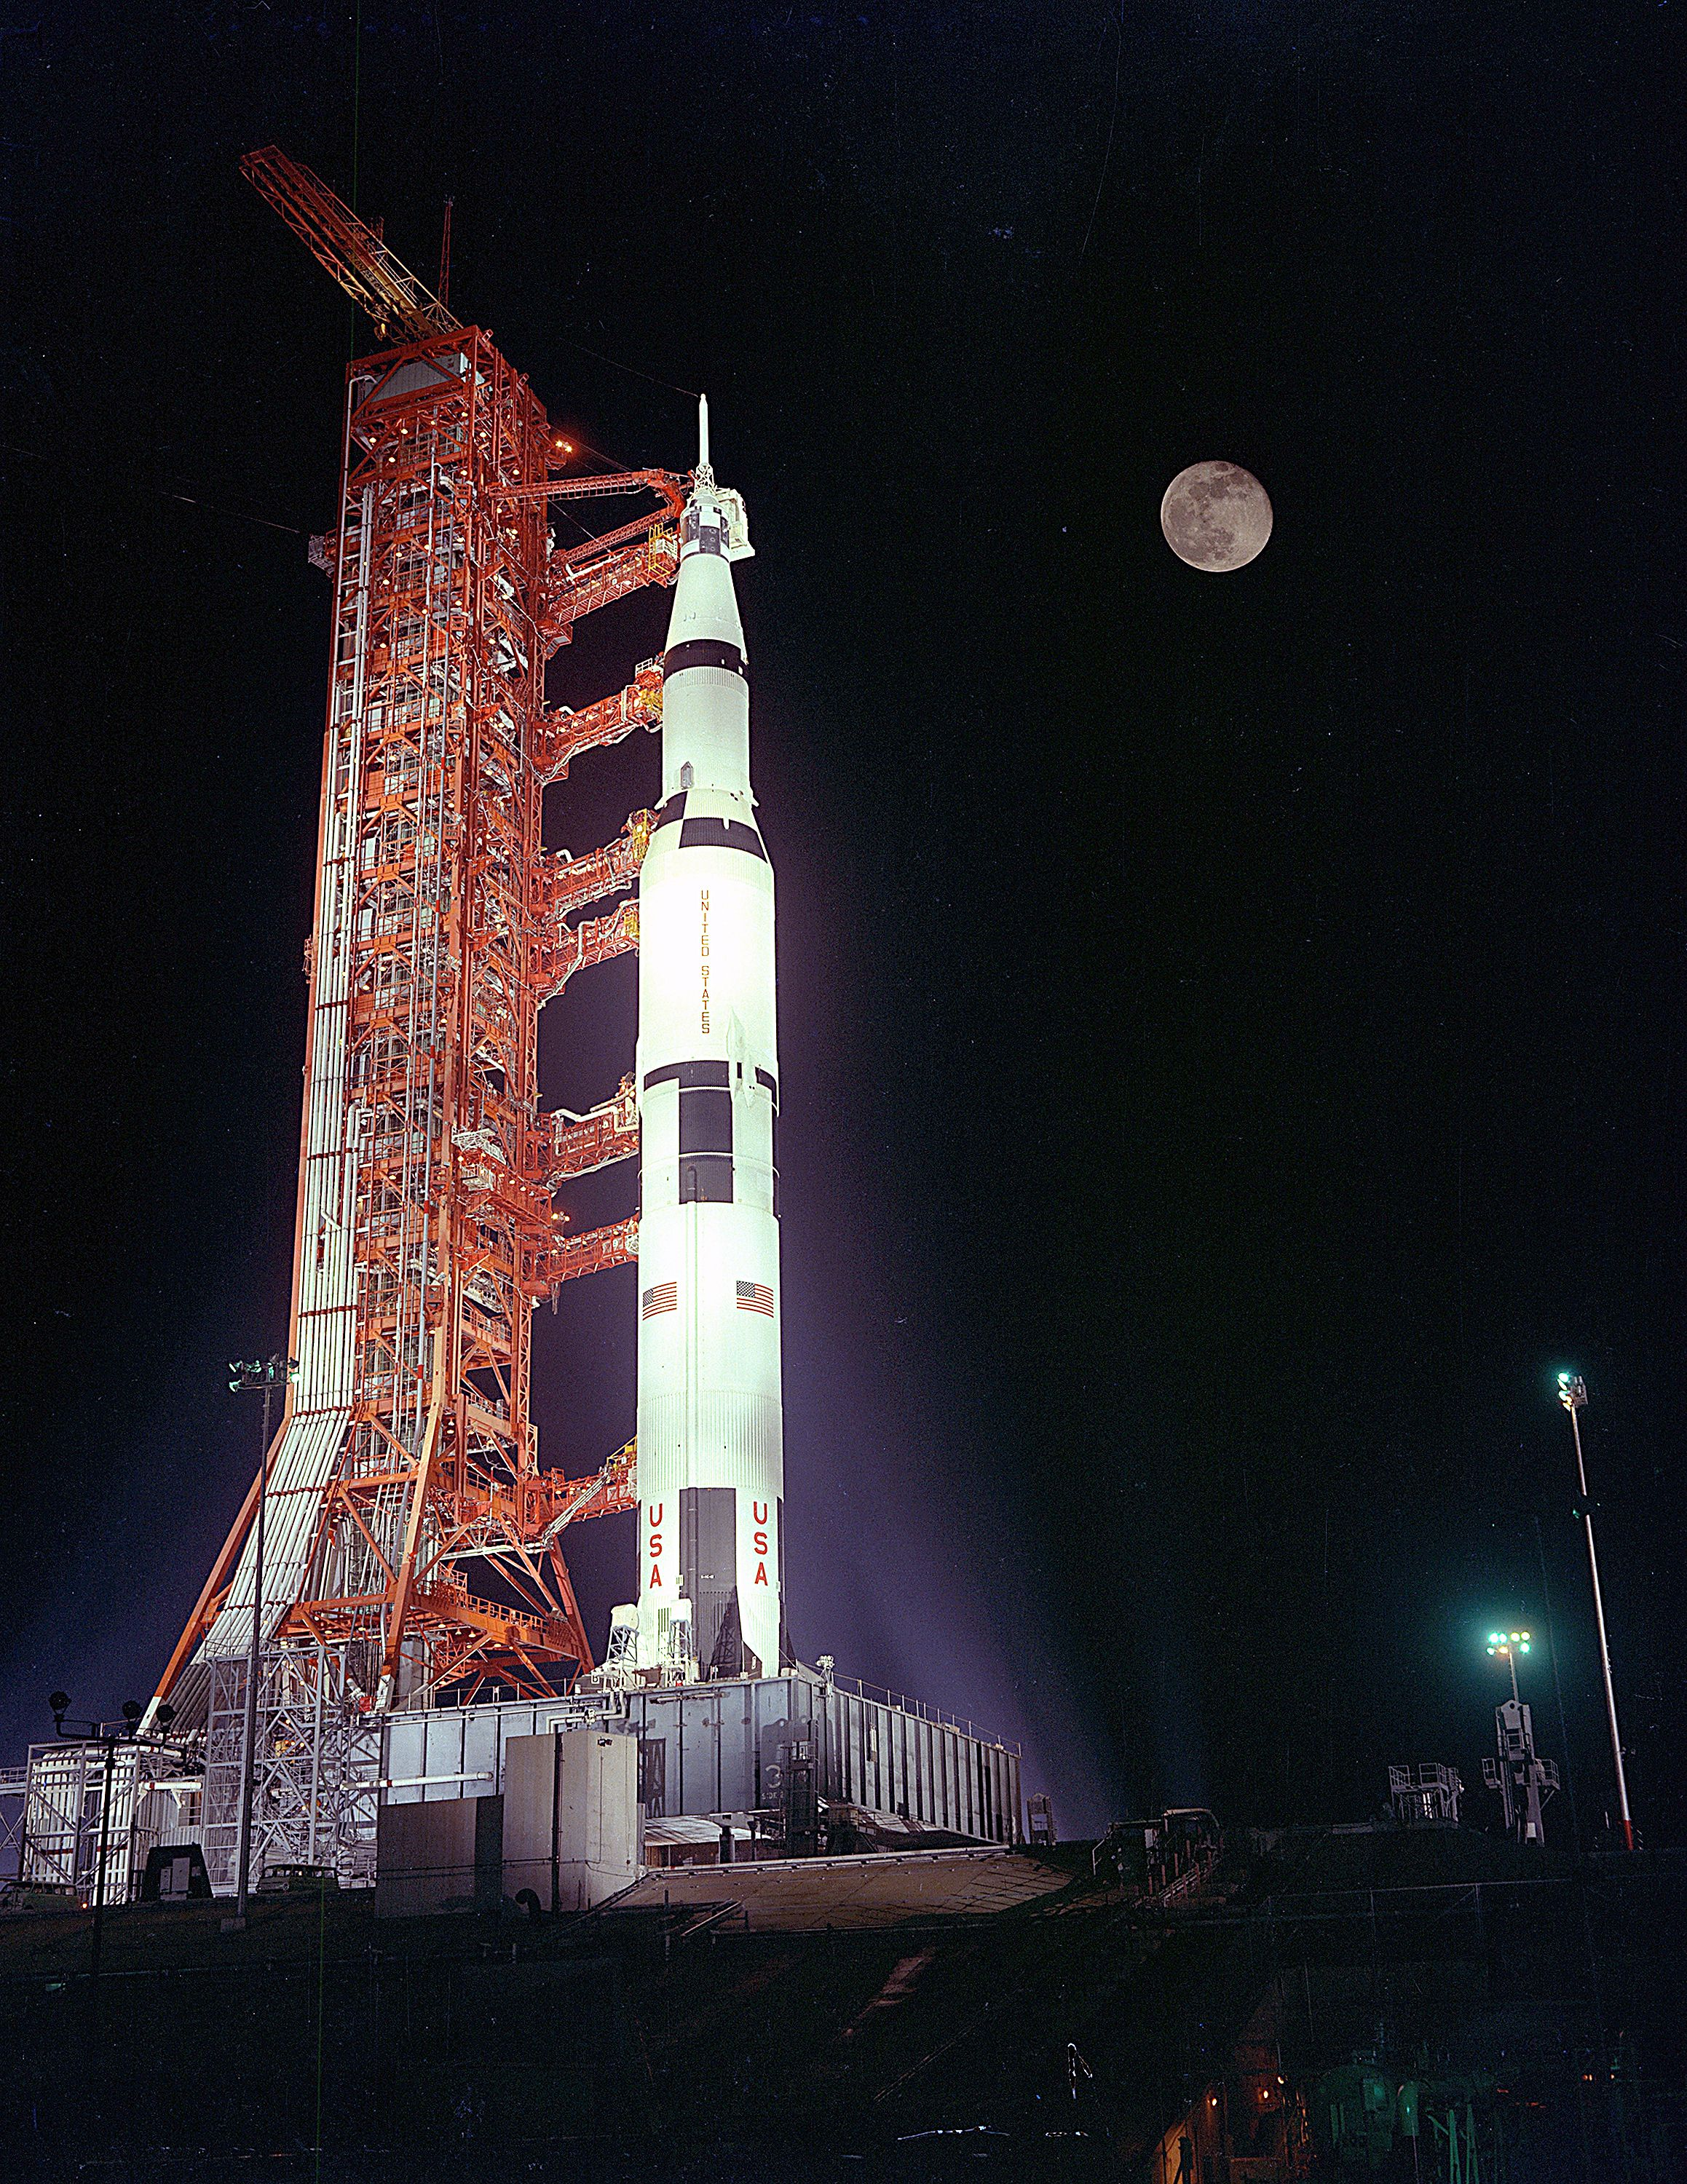 The Apollo 17 Space Vehicle sits poised beneath a full